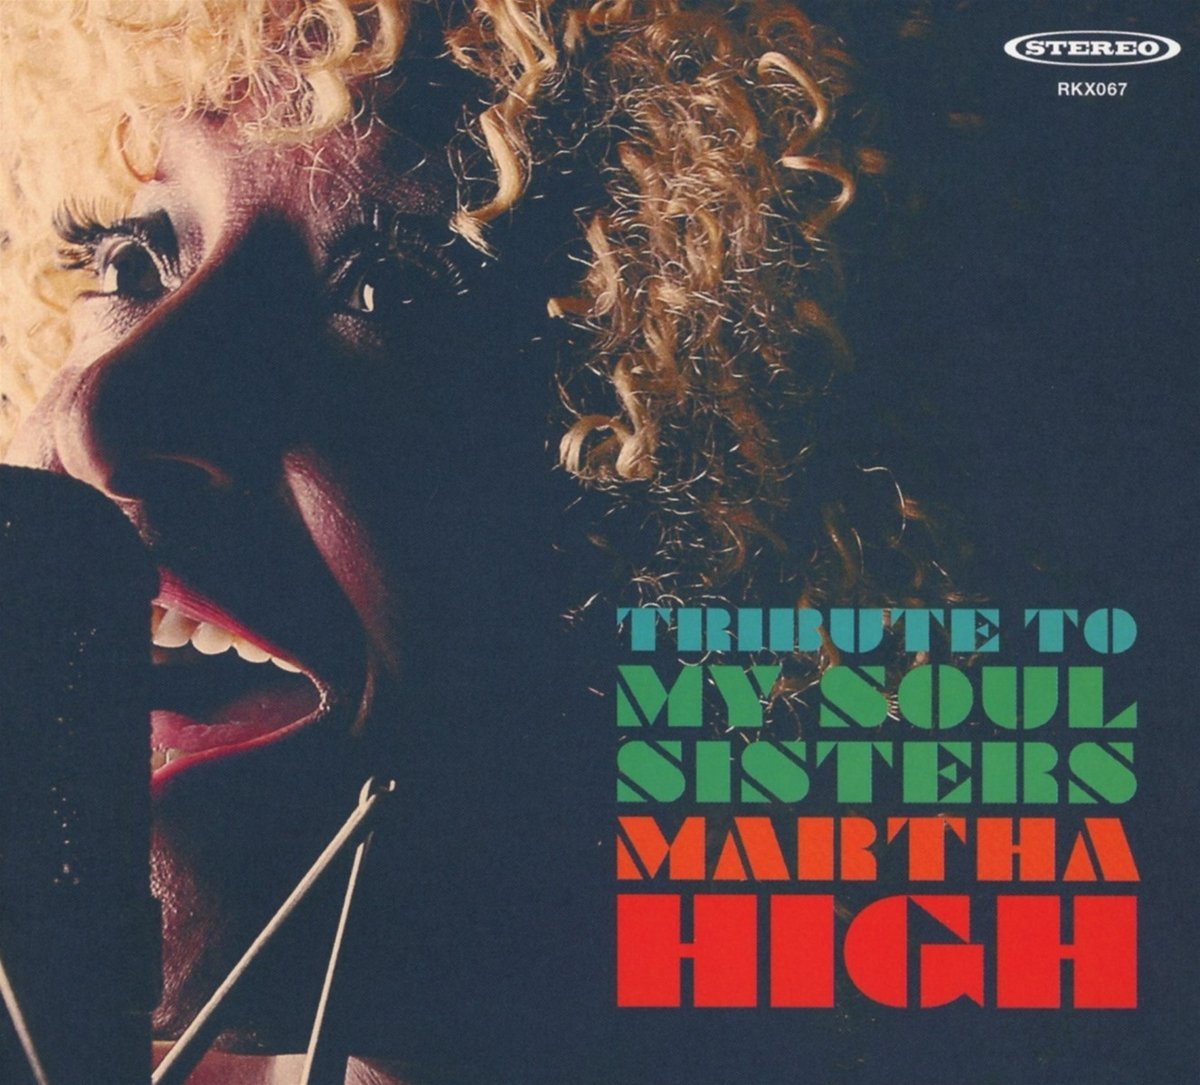 MARTHA HIGH « Tribute to my soul sisters »